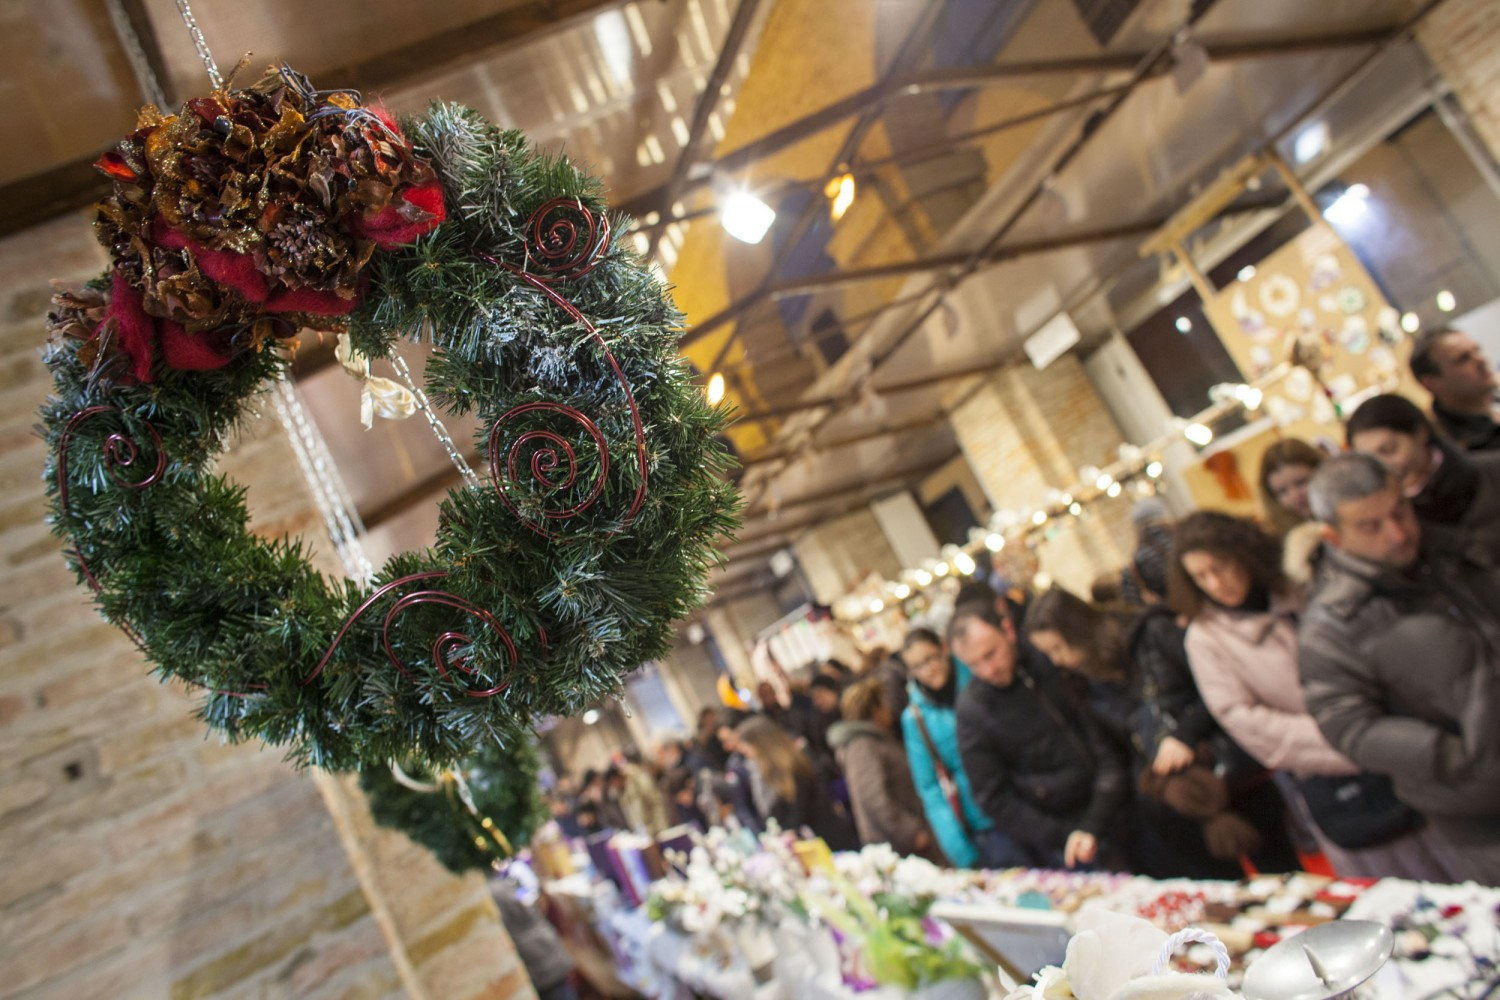 4 certain ingredients of the Christmas in Emilia Romagna